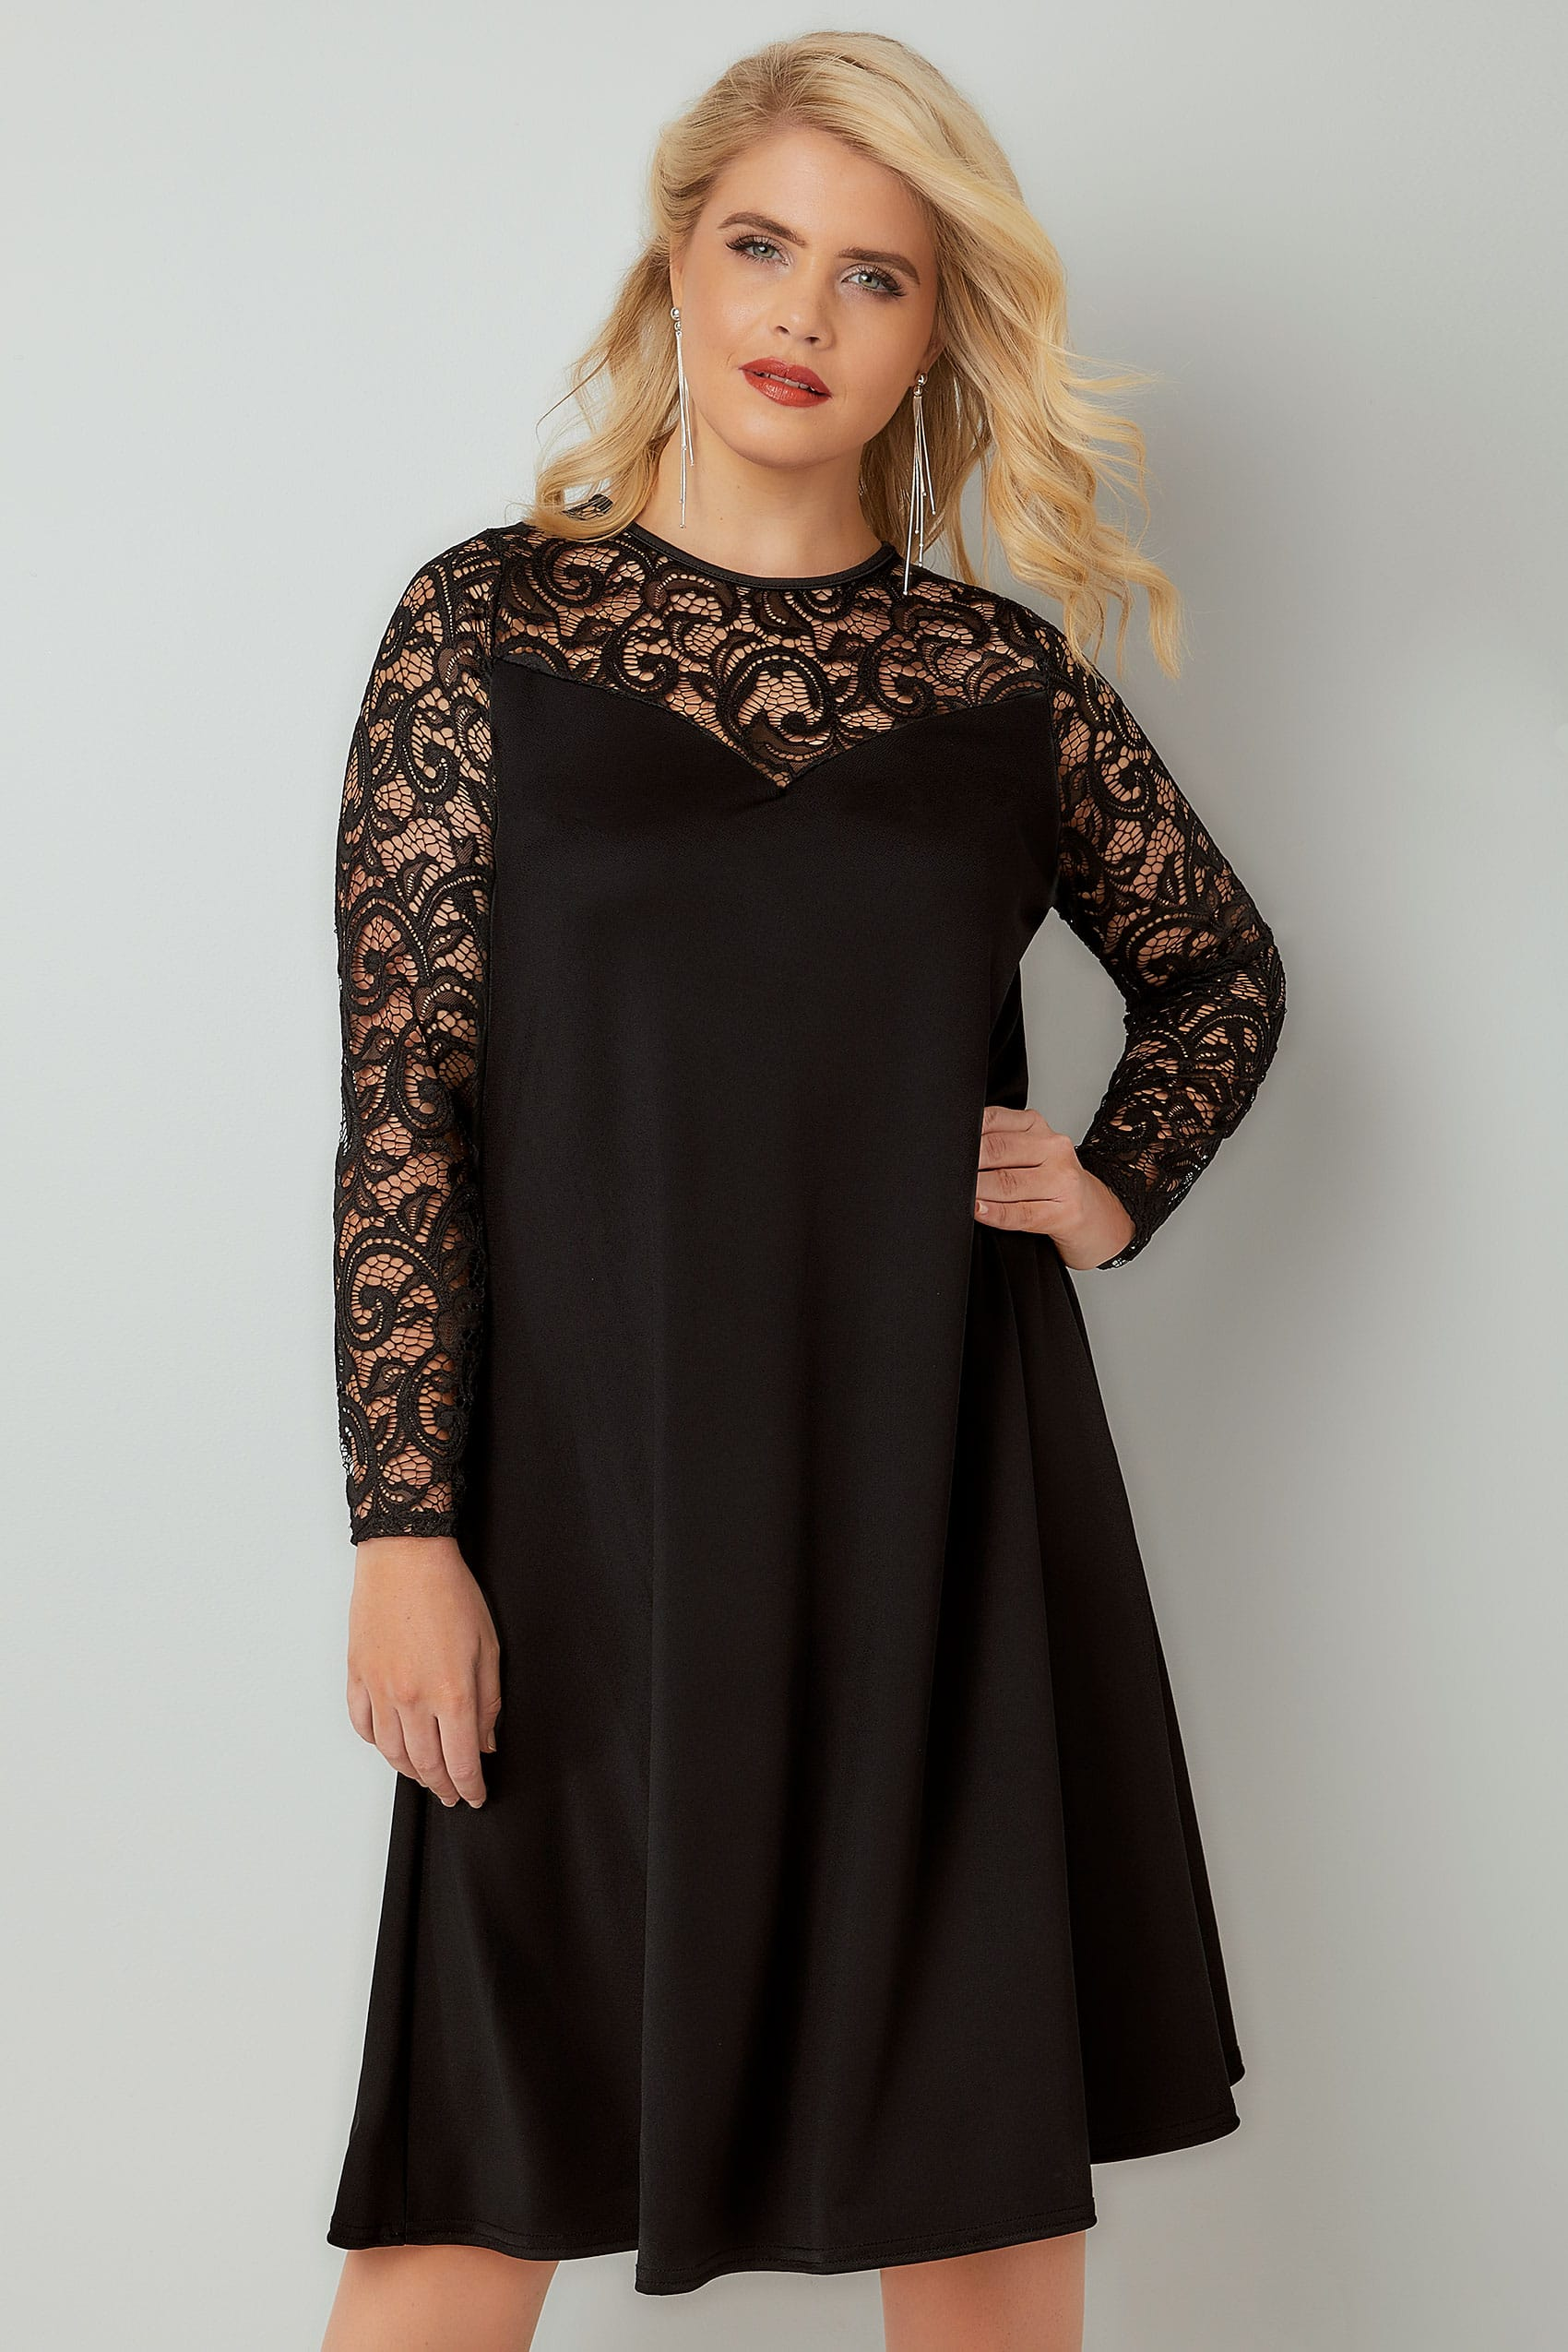 Black dress size 16